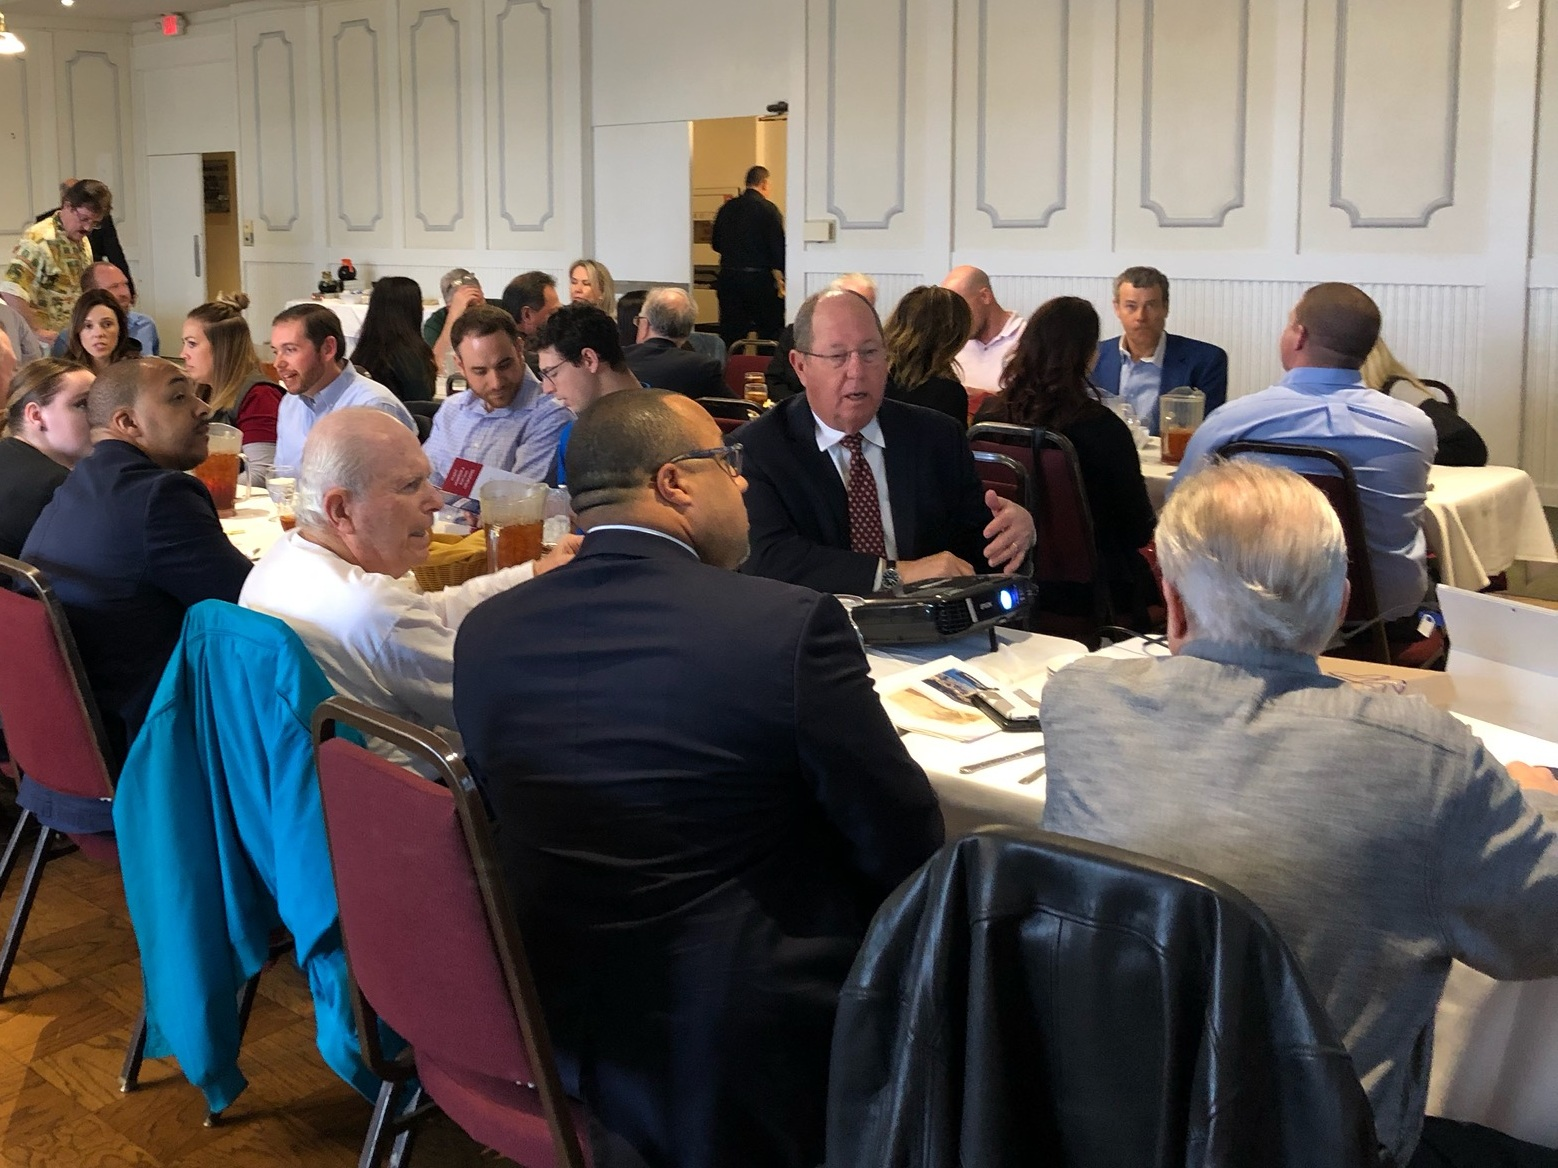 LAAPL Luncheon_3-21-2019_Photo 1.jpg